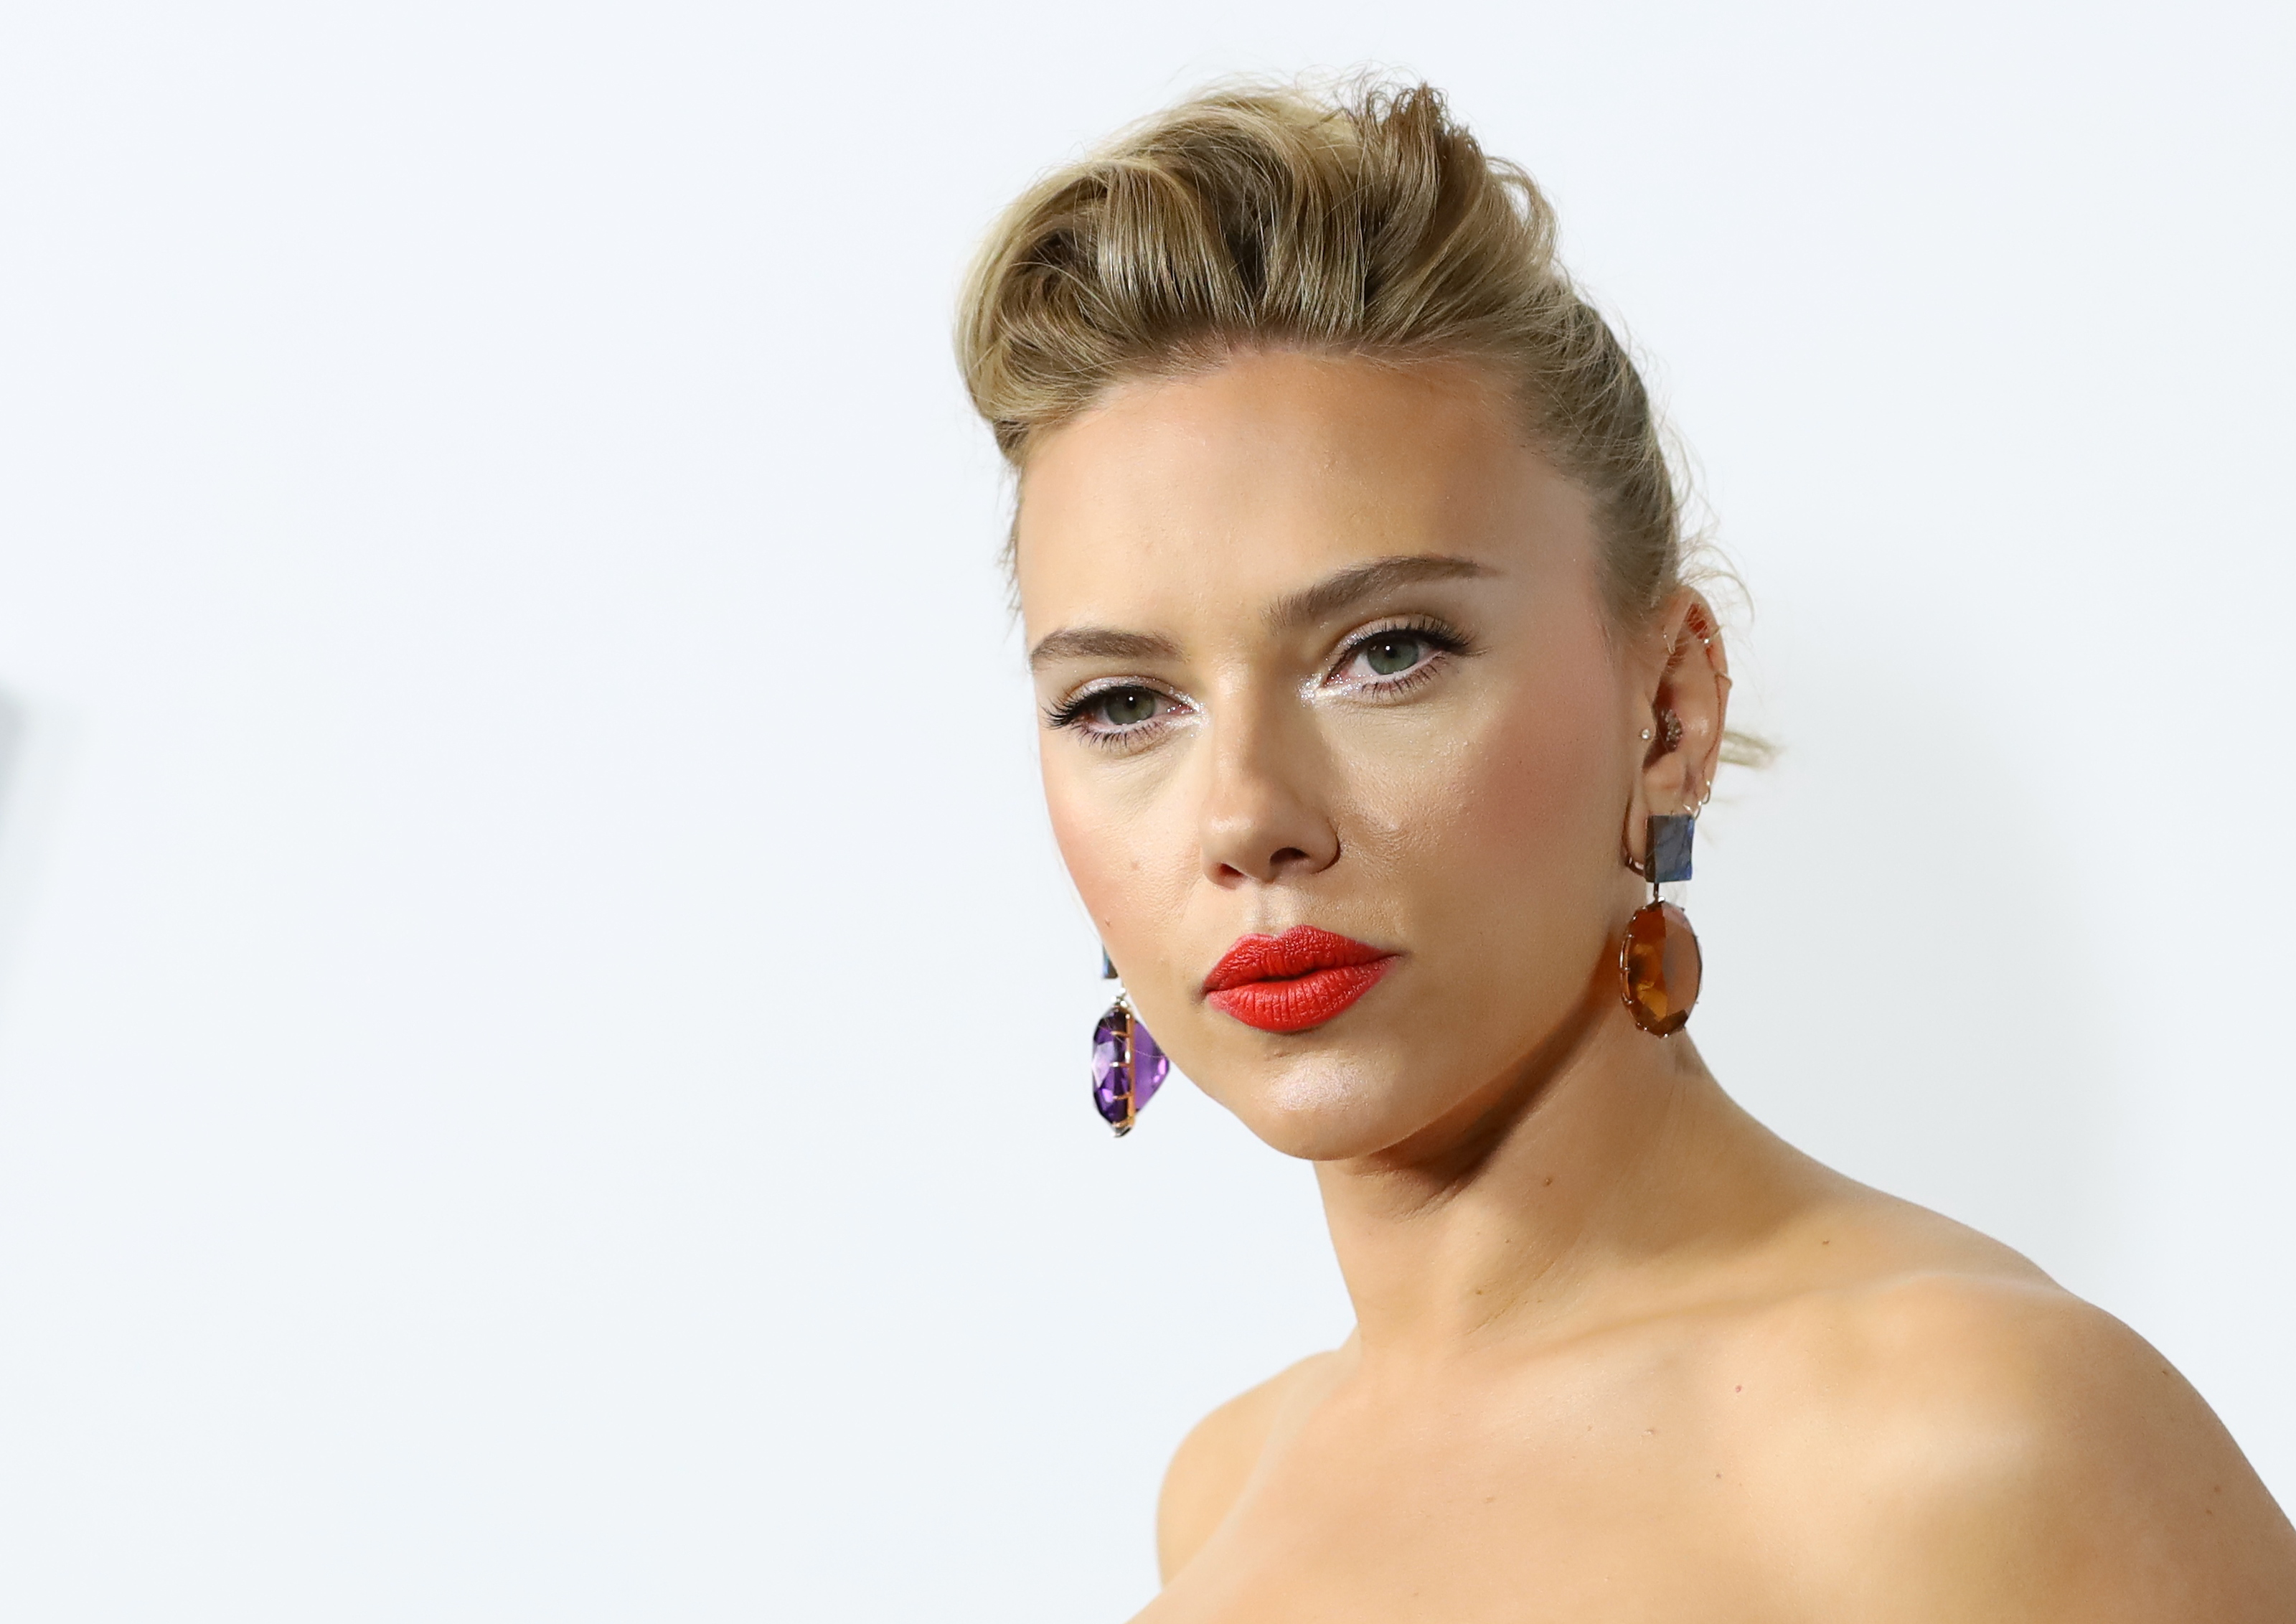 Scarlett Johansson: I've learned from past mistakes